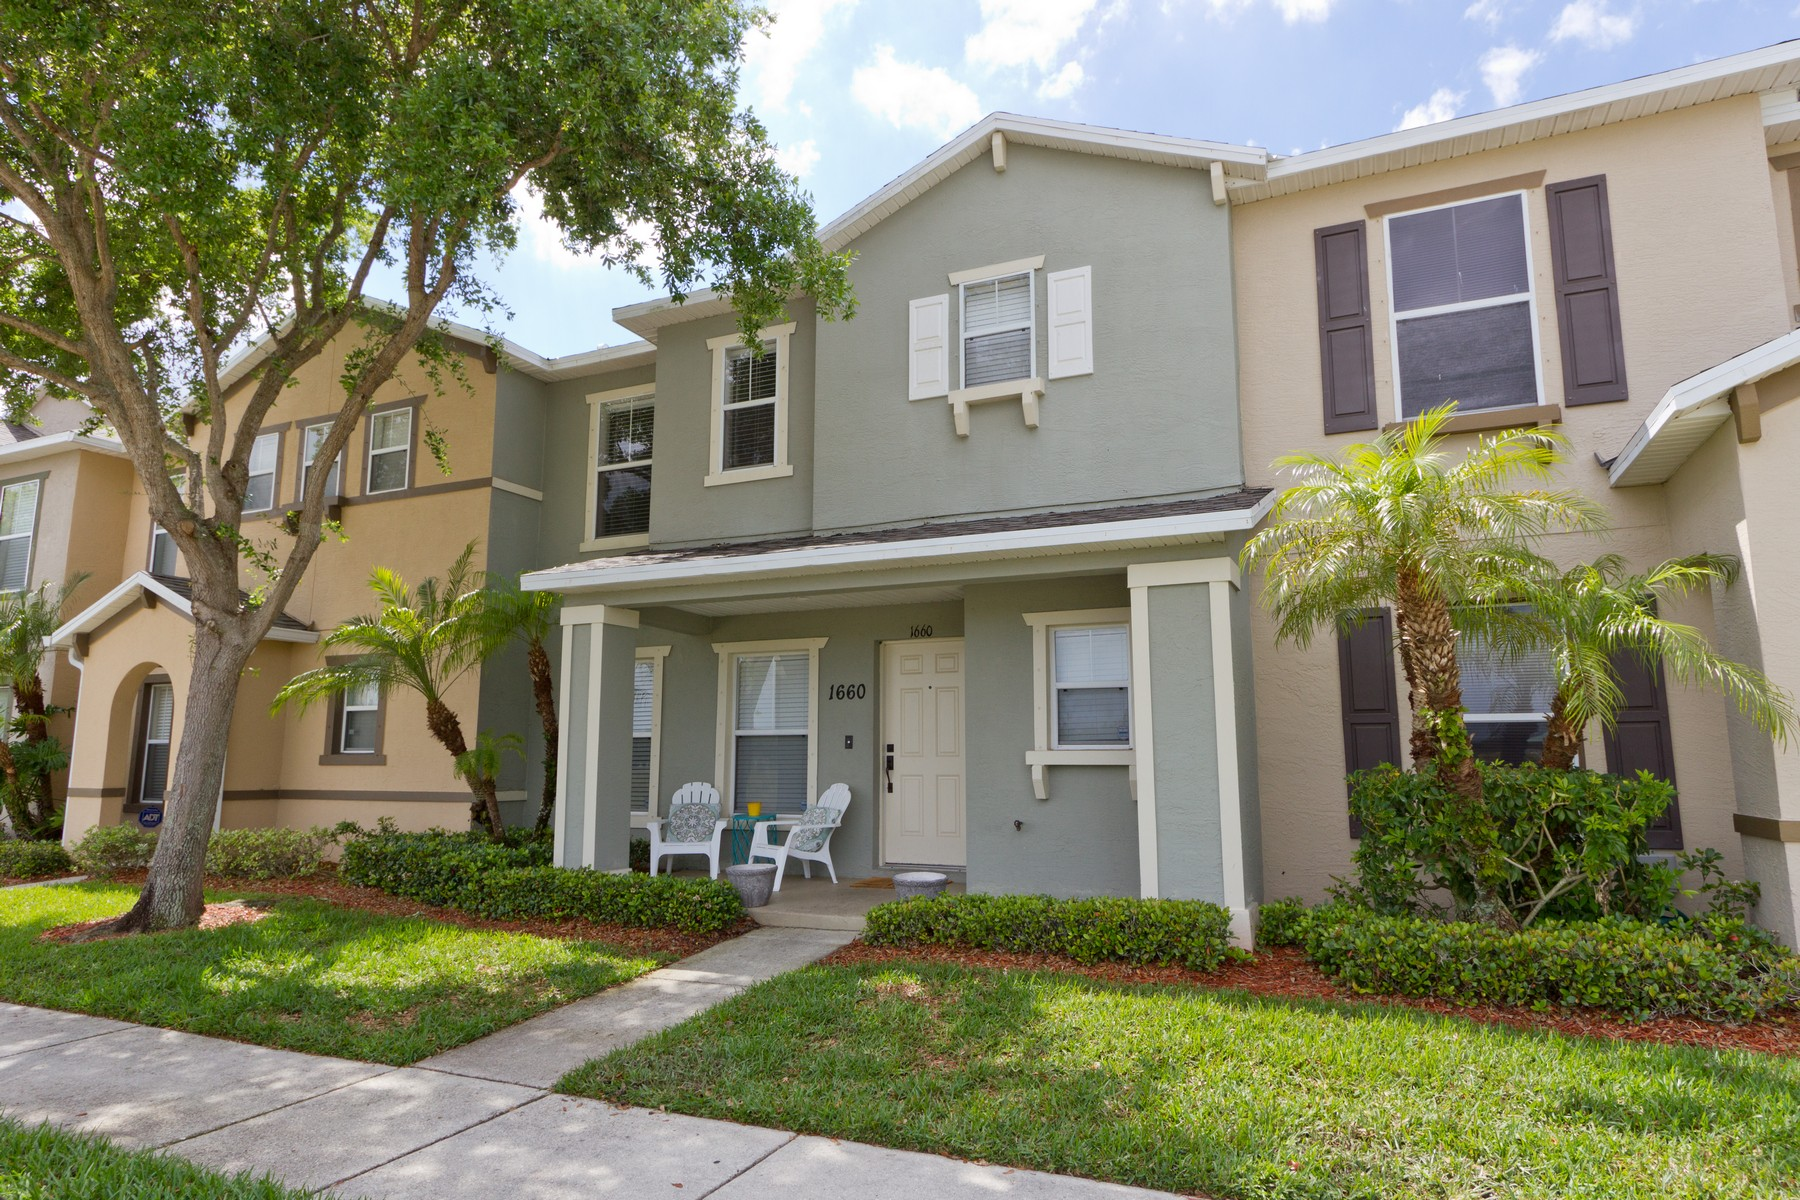 Single Family Home for Sale at Well Cared For and Updated Two Story Condo With Welcoming Covered Front Porch! 1660 Pointe West Way Vero Beach, Florida 32966 United States